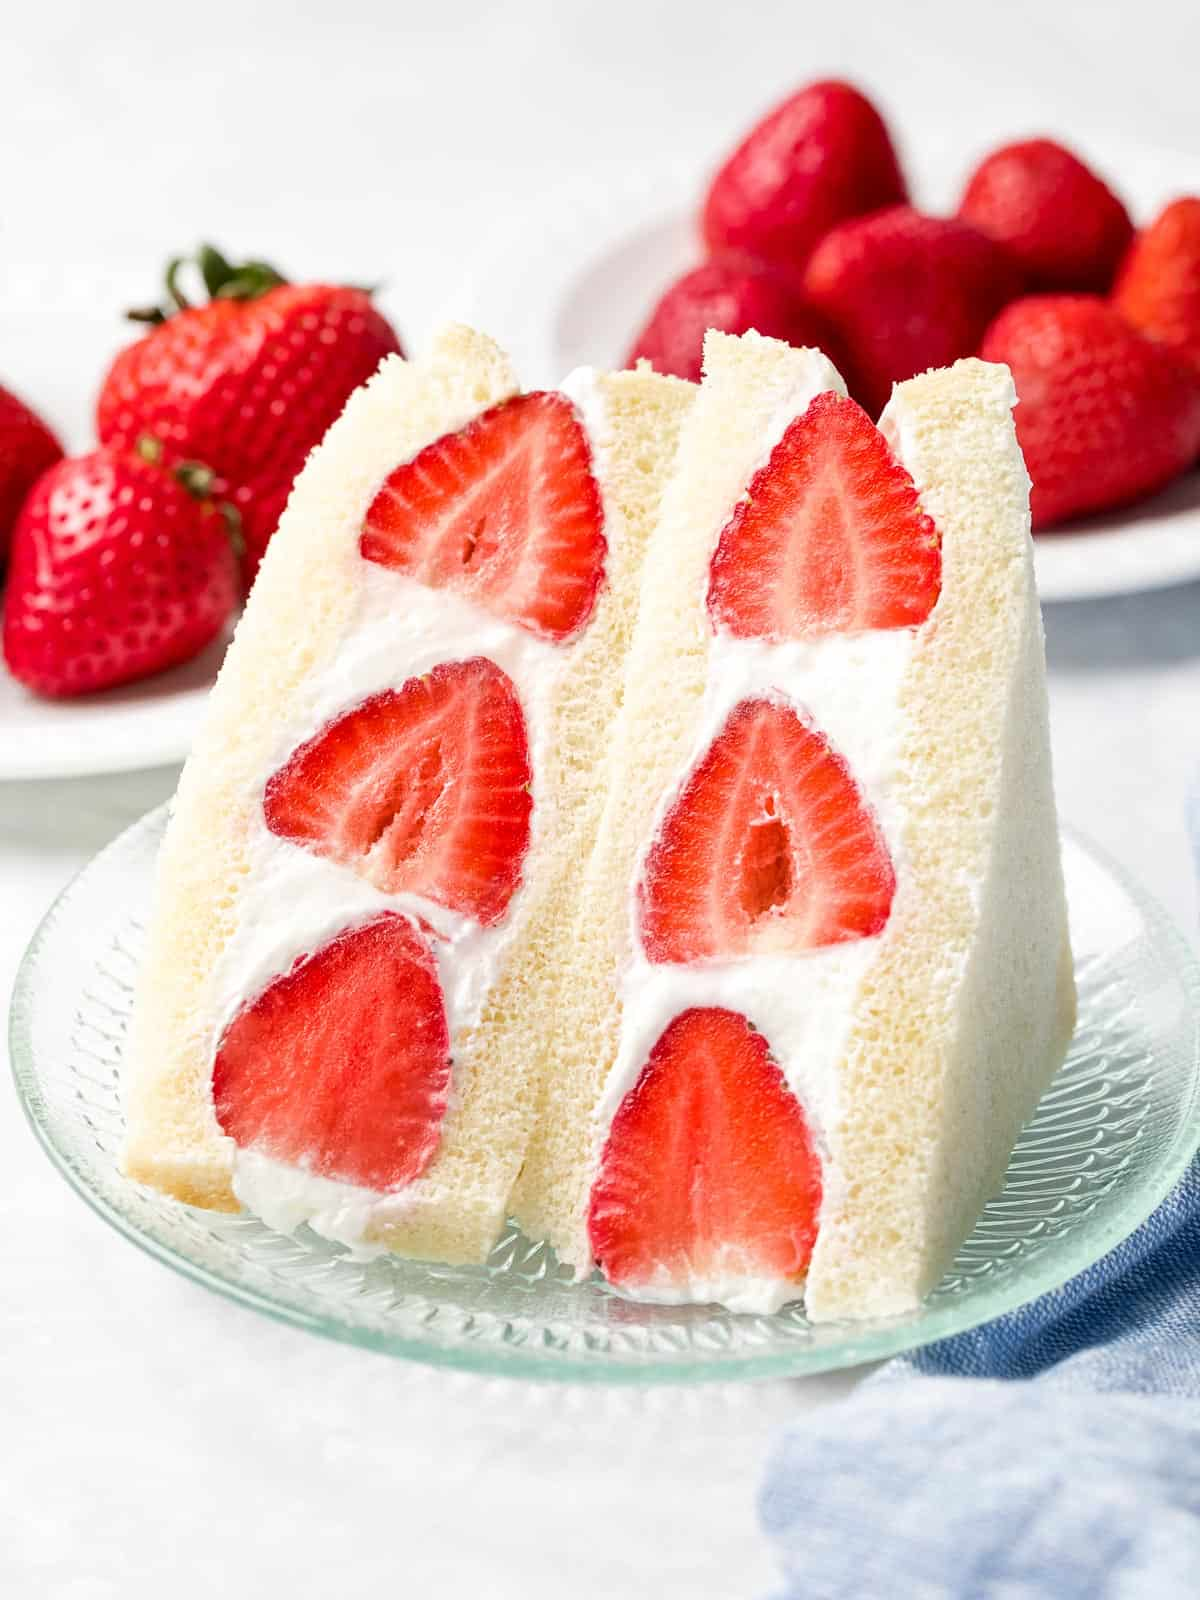 Japanese fruit sando made with strawberries and whipped cream sliced in half next to a plate of red strawberries.